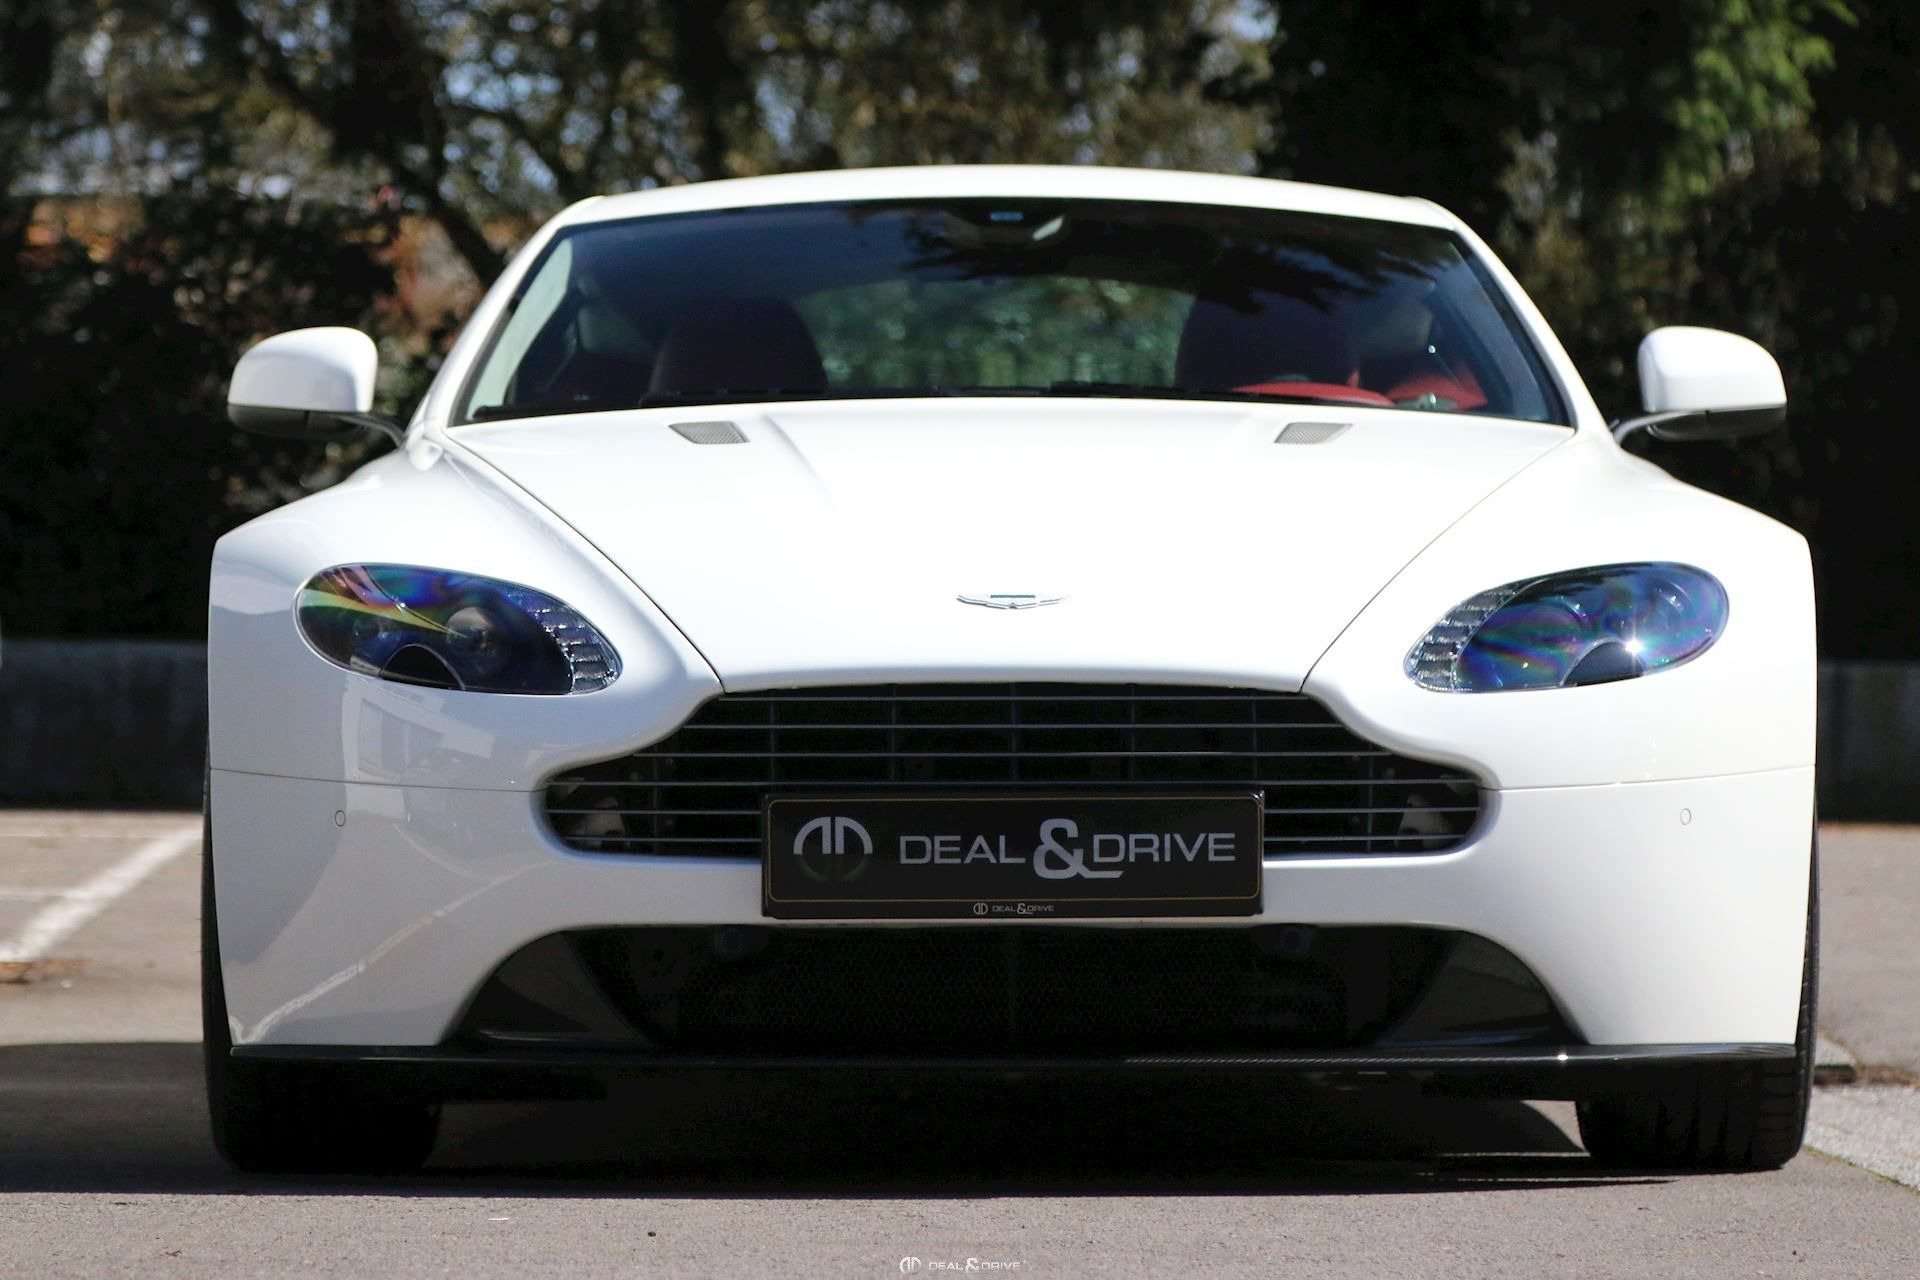 Drive The New aston Martin aston Martin Vantage V8 S Sportshift Ii Deal &